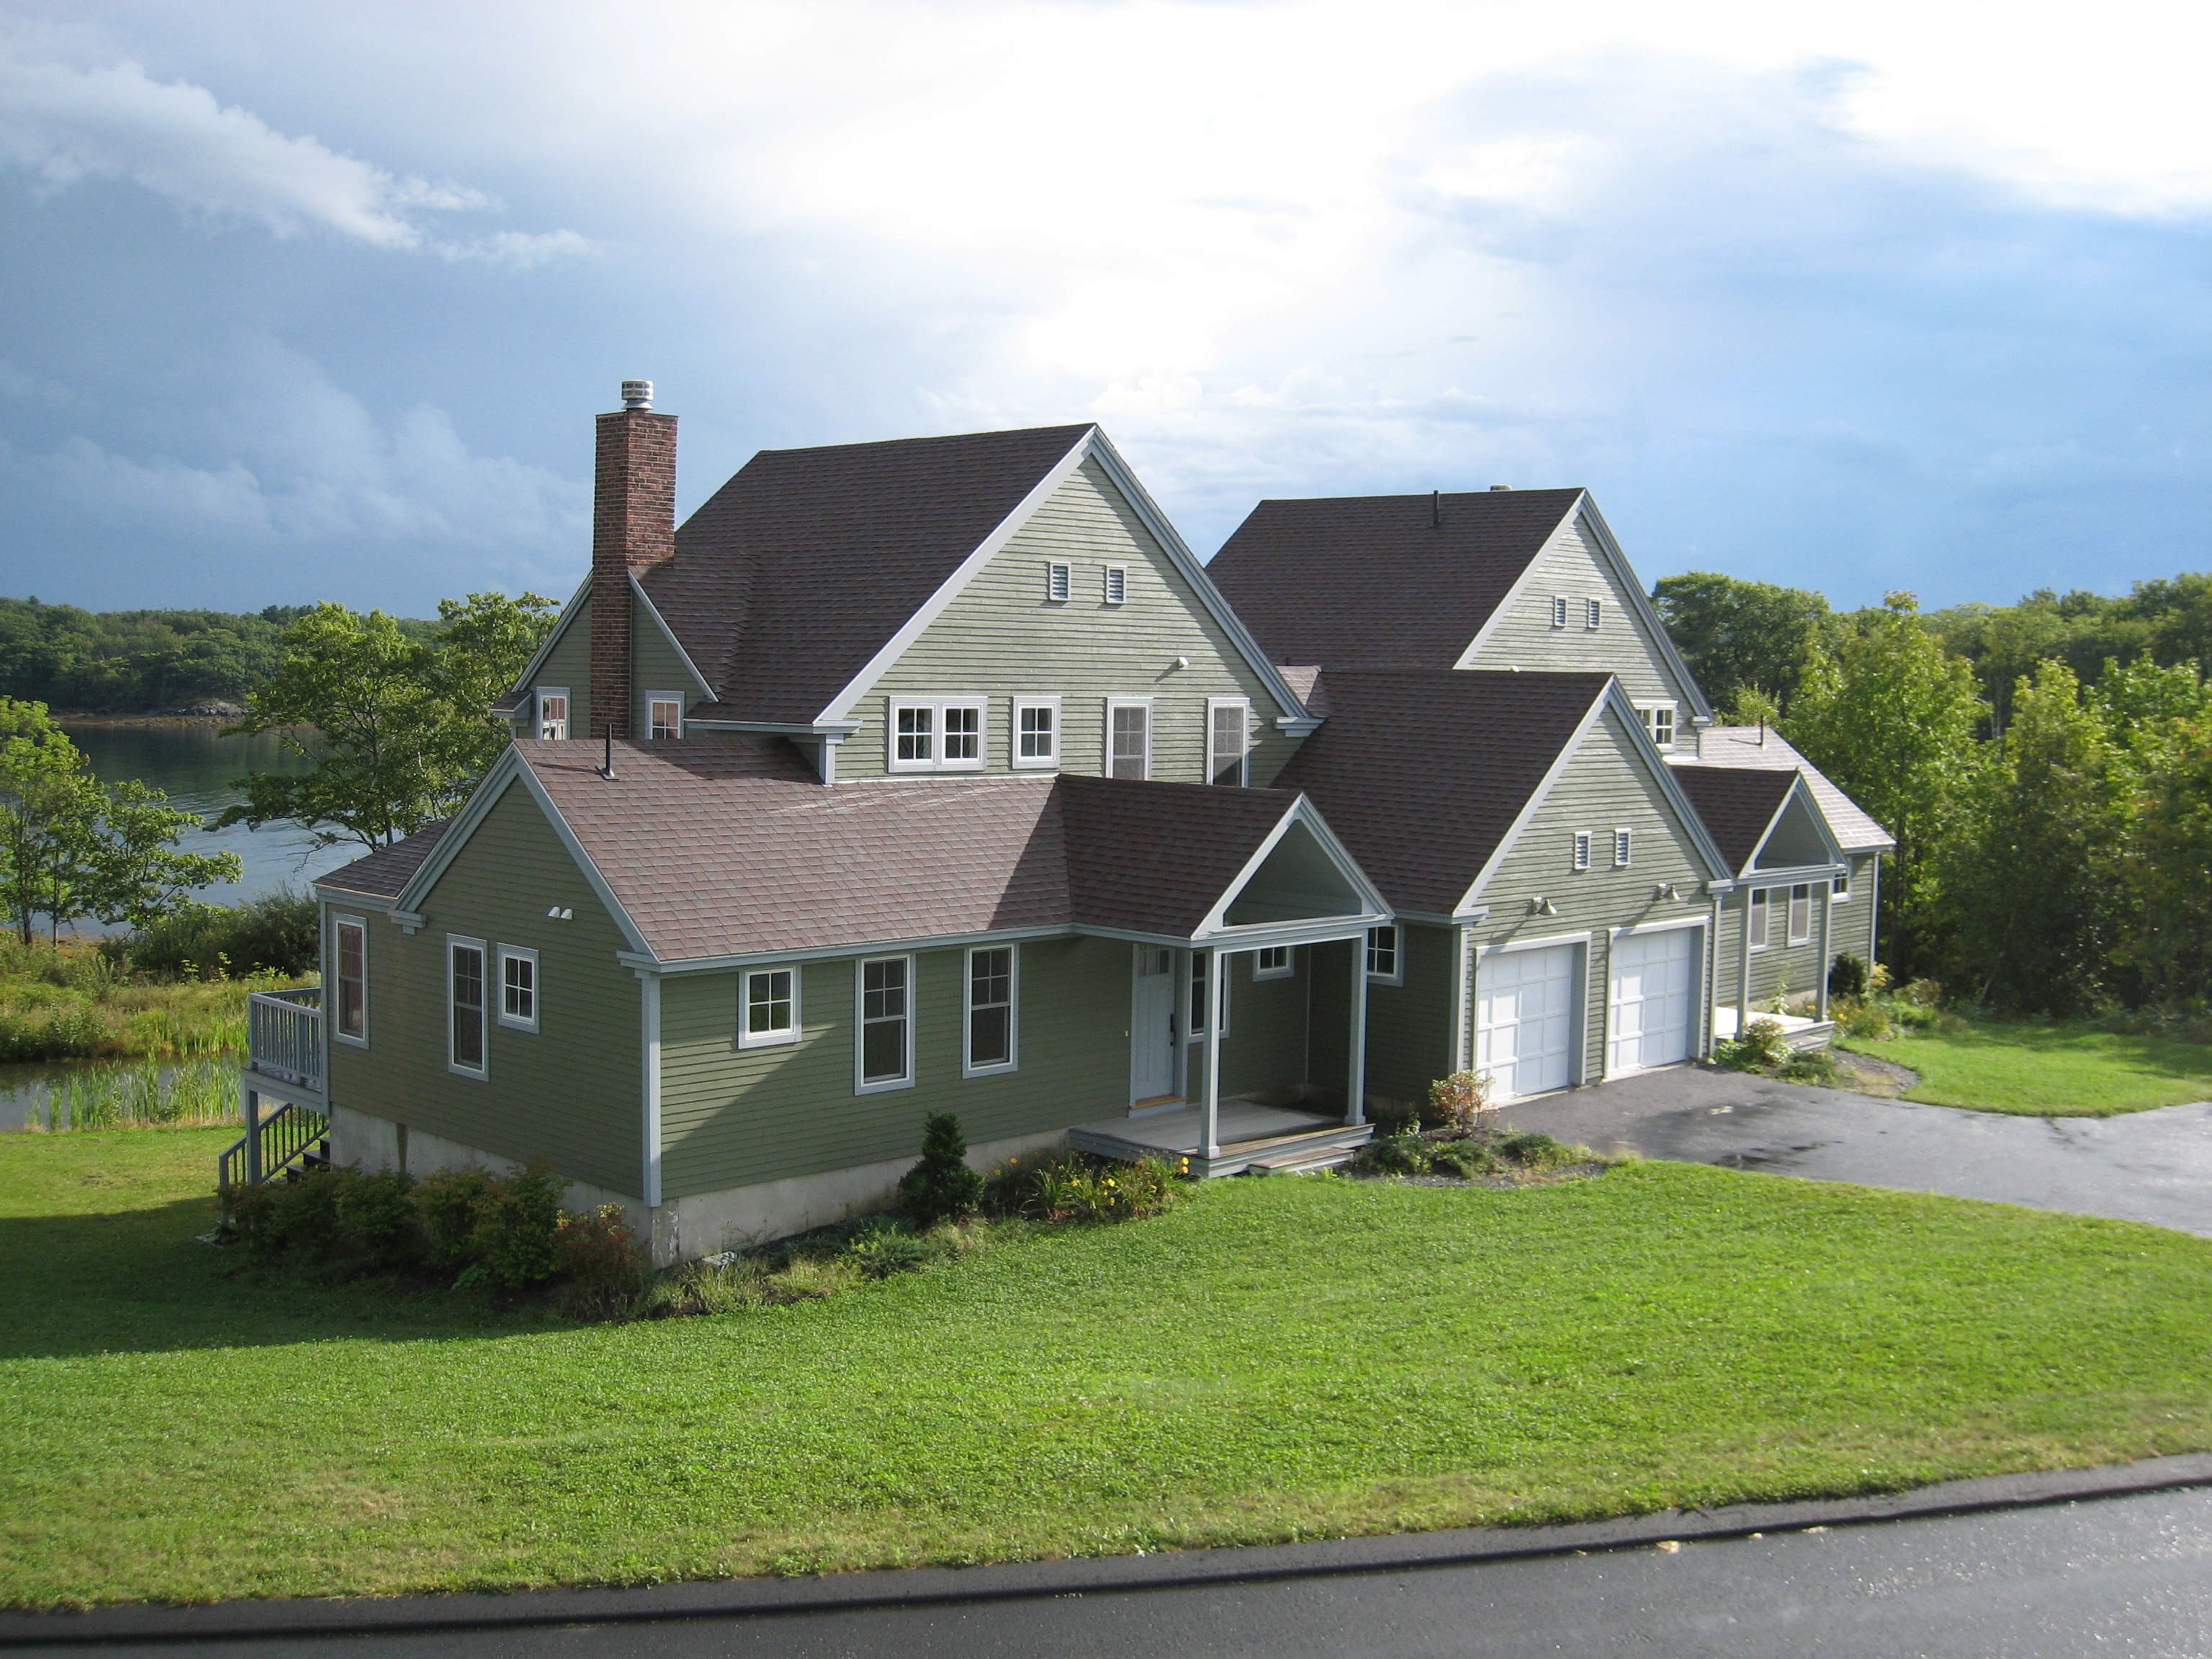 Condominium for Sale at #11B 45 Powerhouse Hill Lane #11B Rockport, Maine, 04856 United States